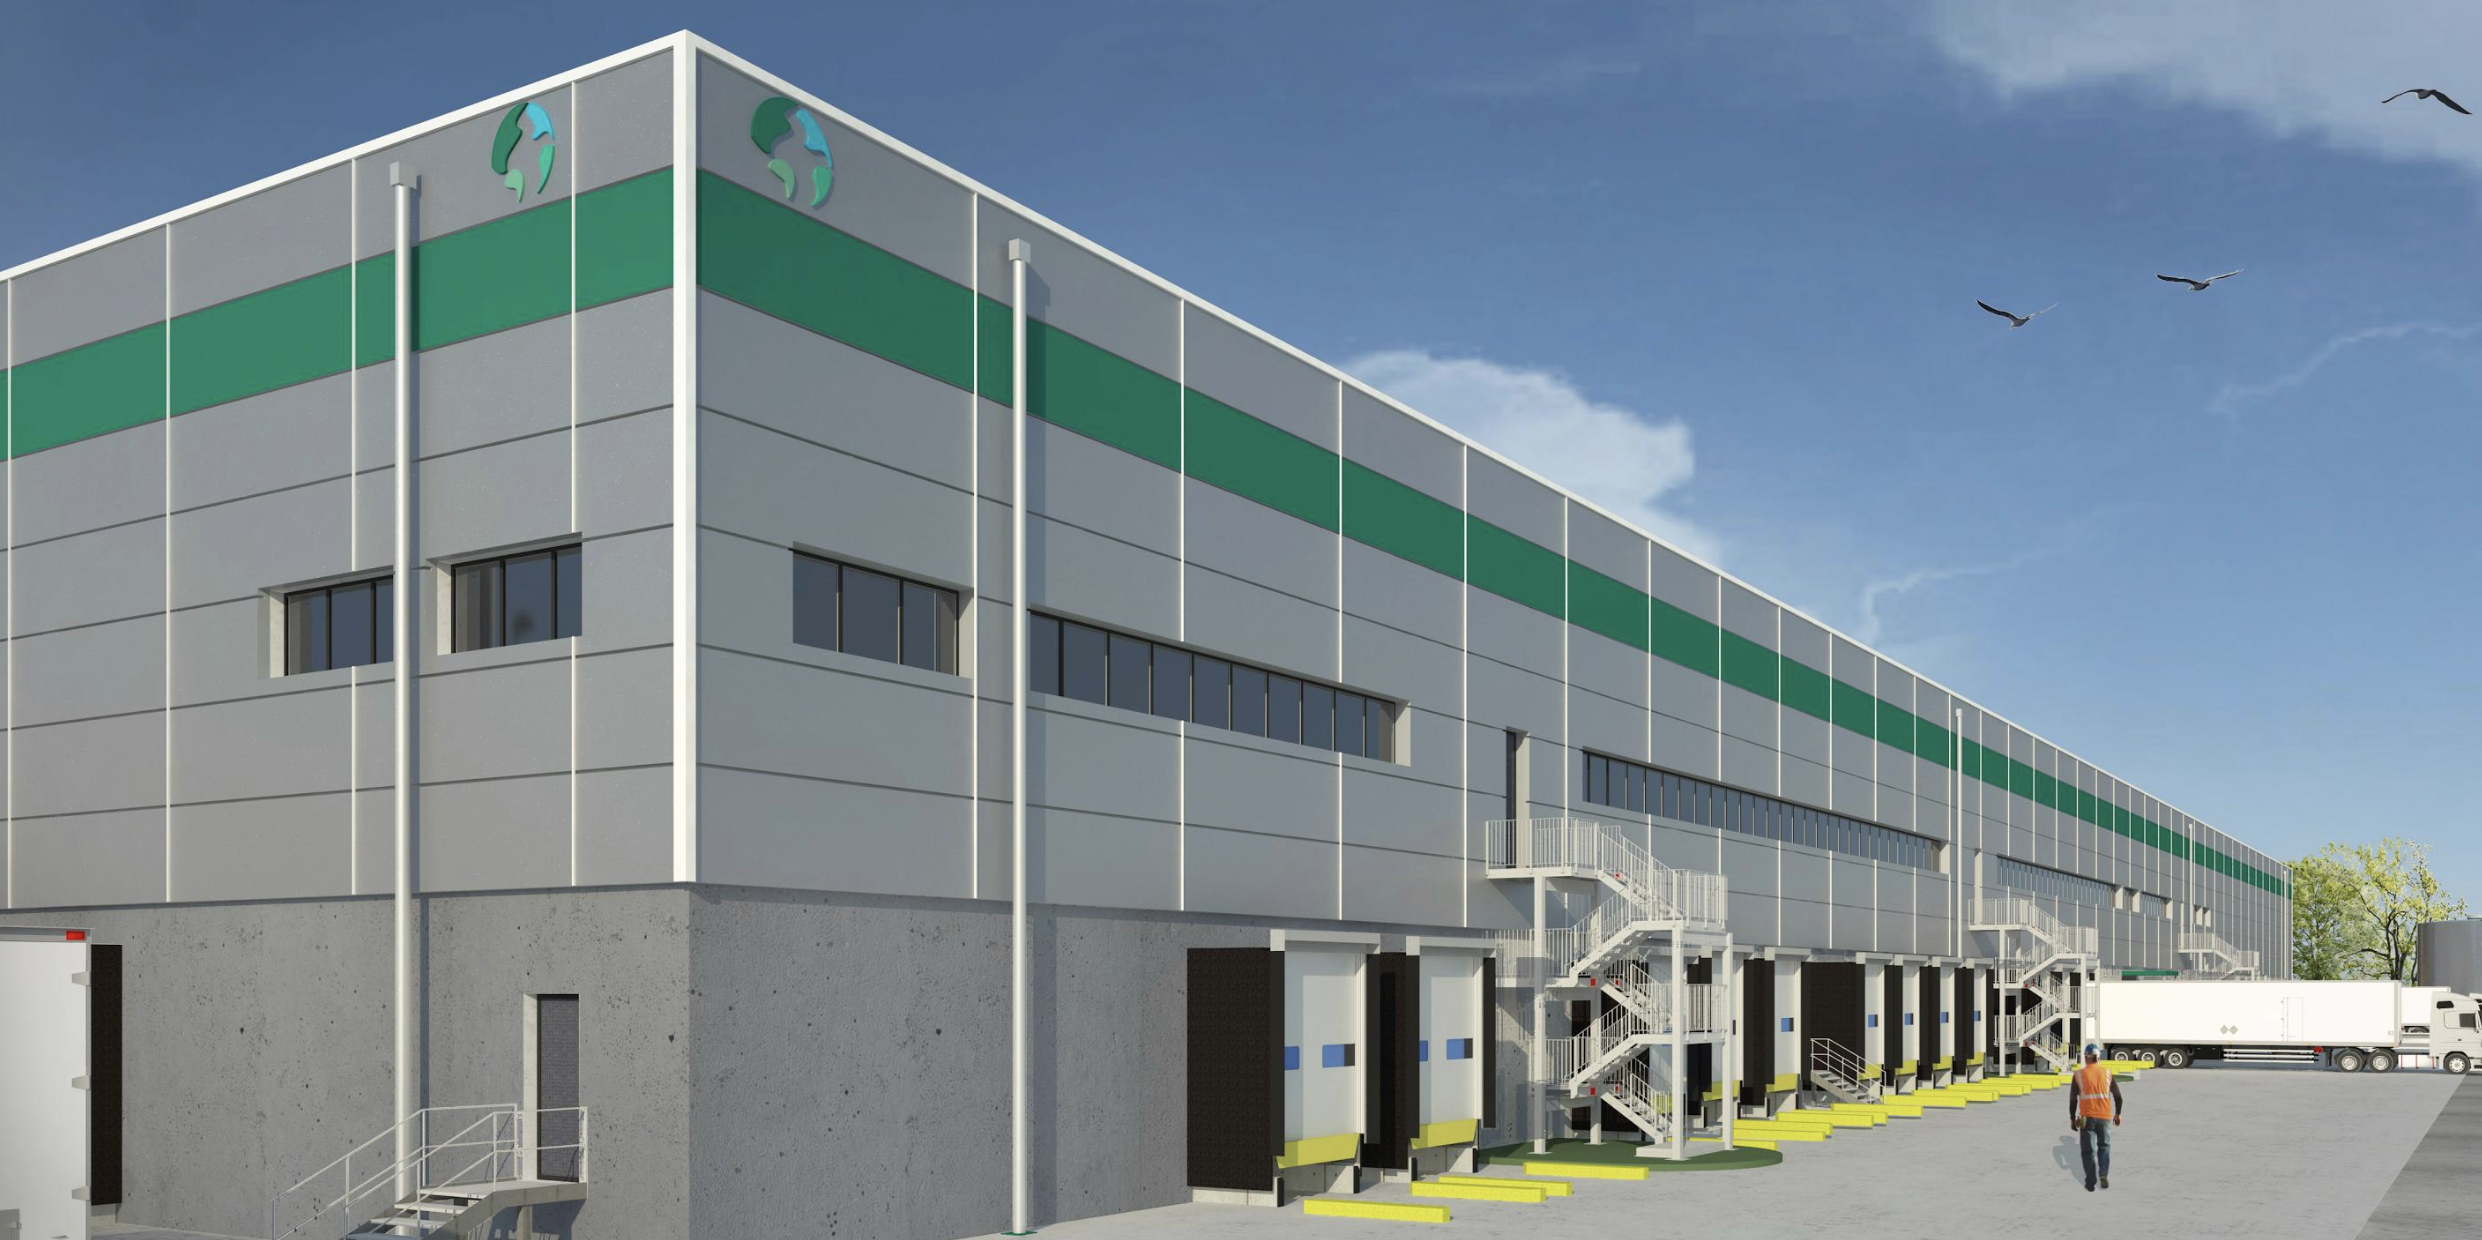 Prologis Begins Construction of Build-to- Suit Facility for Autostrasporti Vercesi at Pozzuolo Martesana